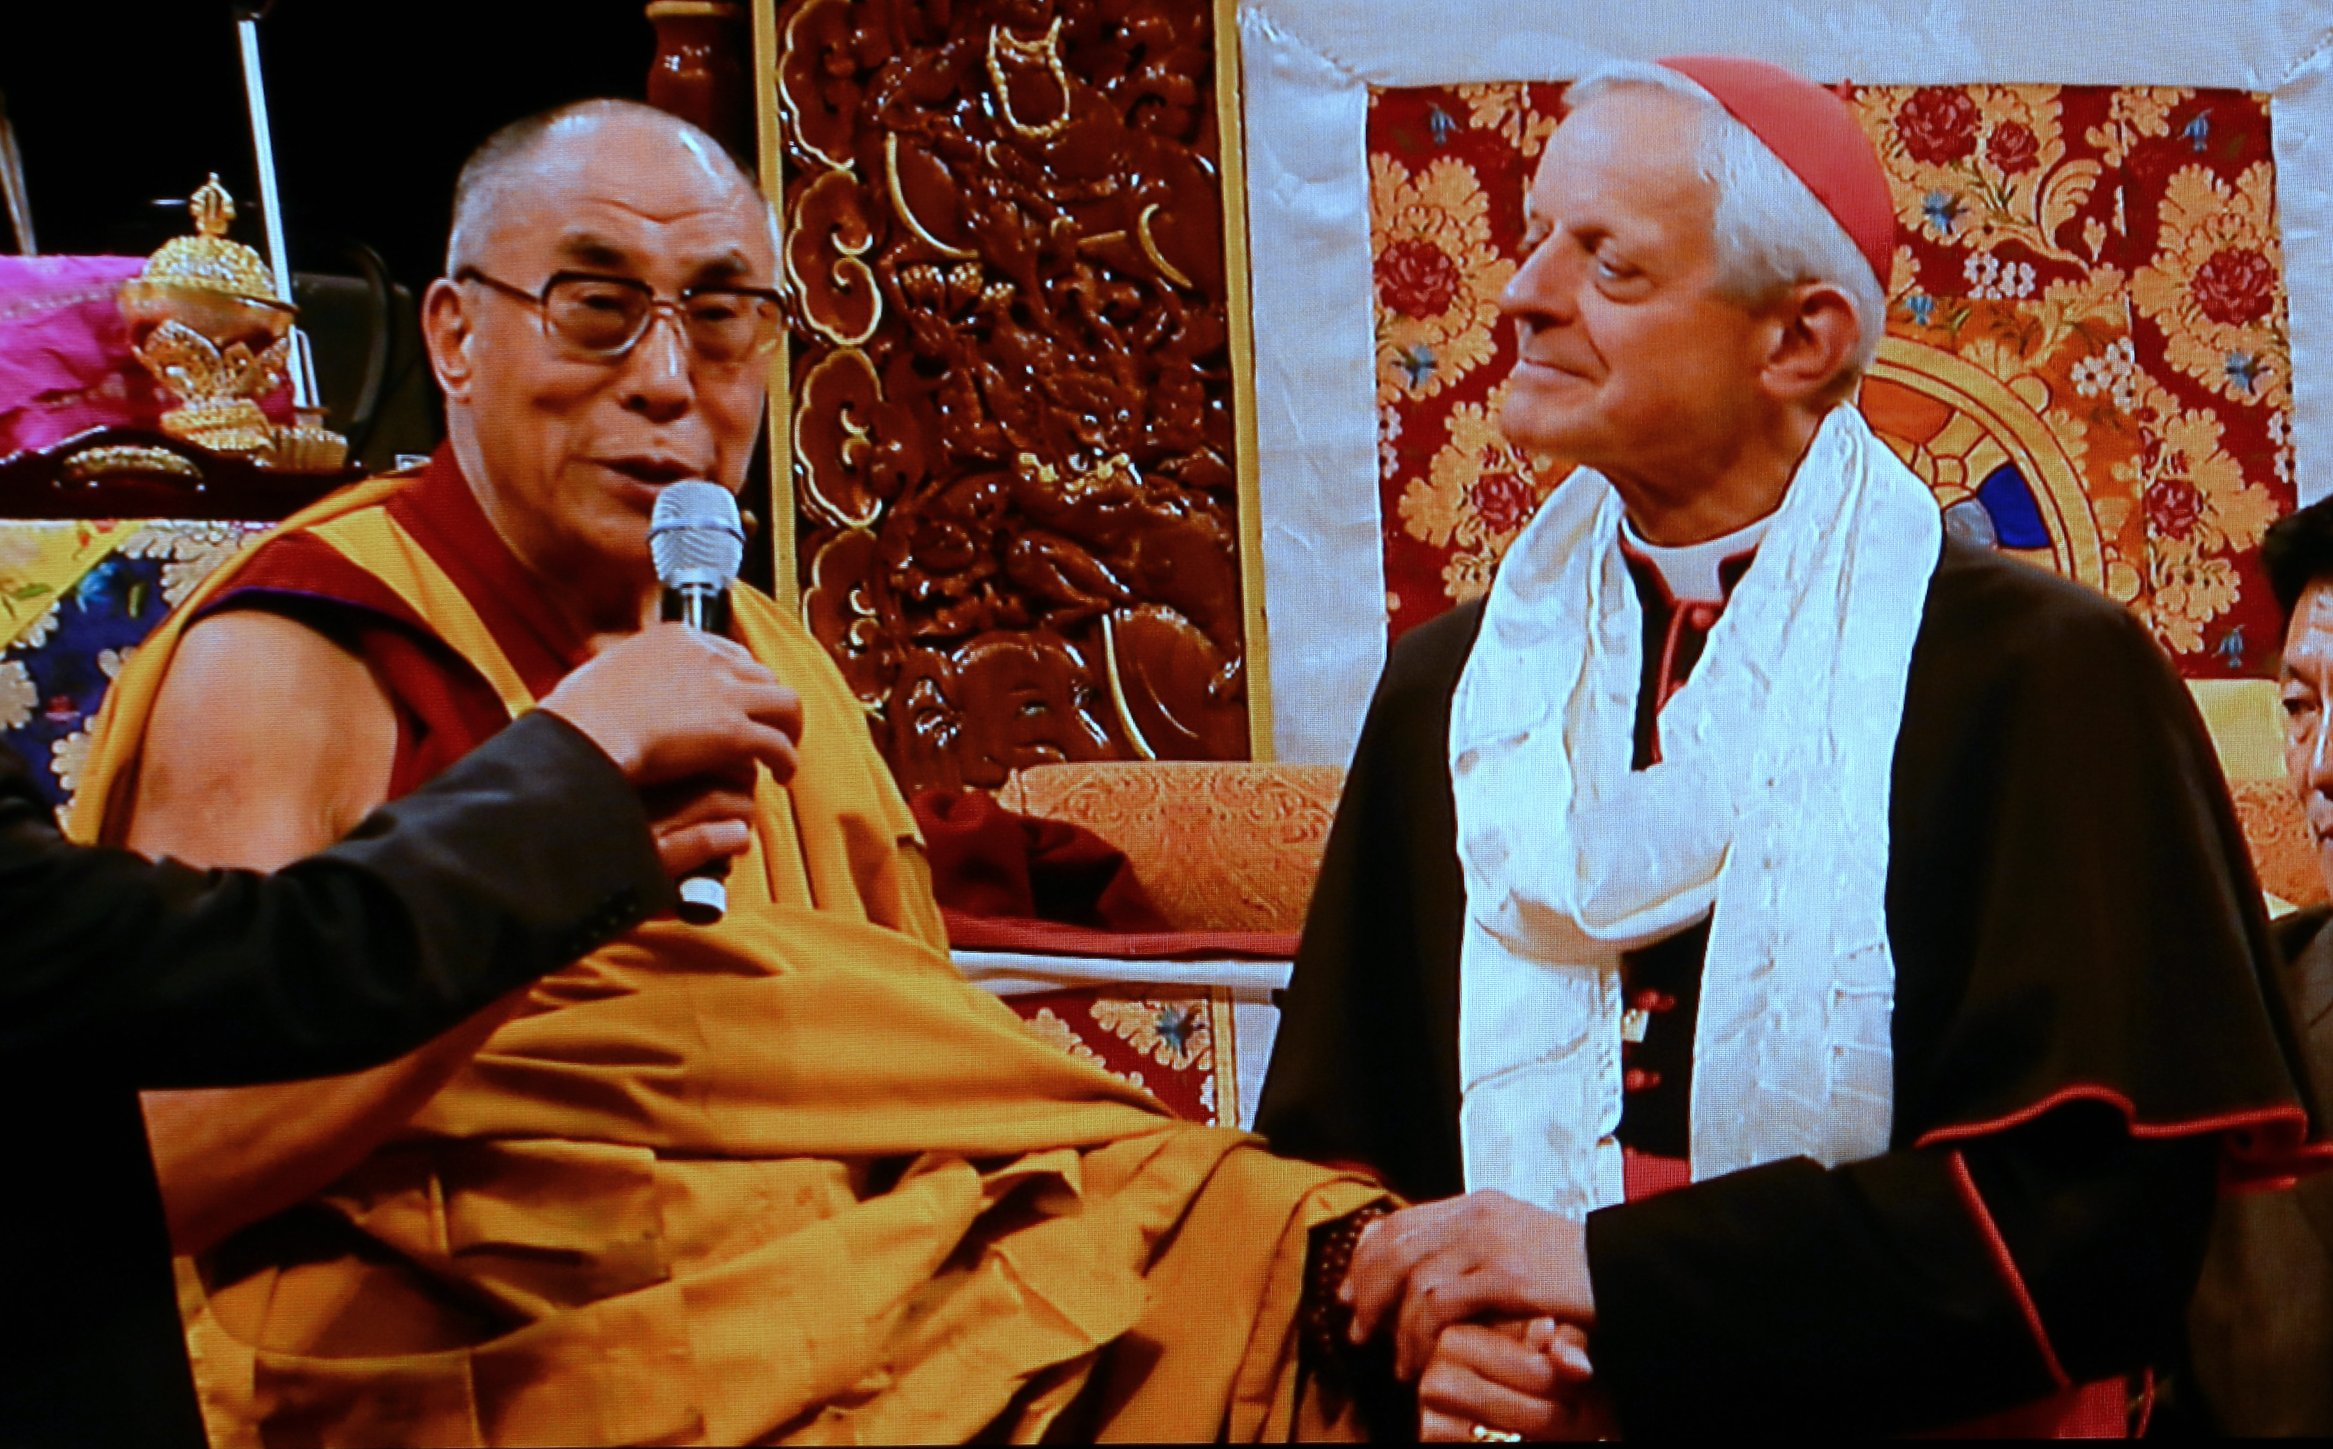 Cardinal HE Donald Wuerl welcomes His Holiness the 14th Dalai Lama 002